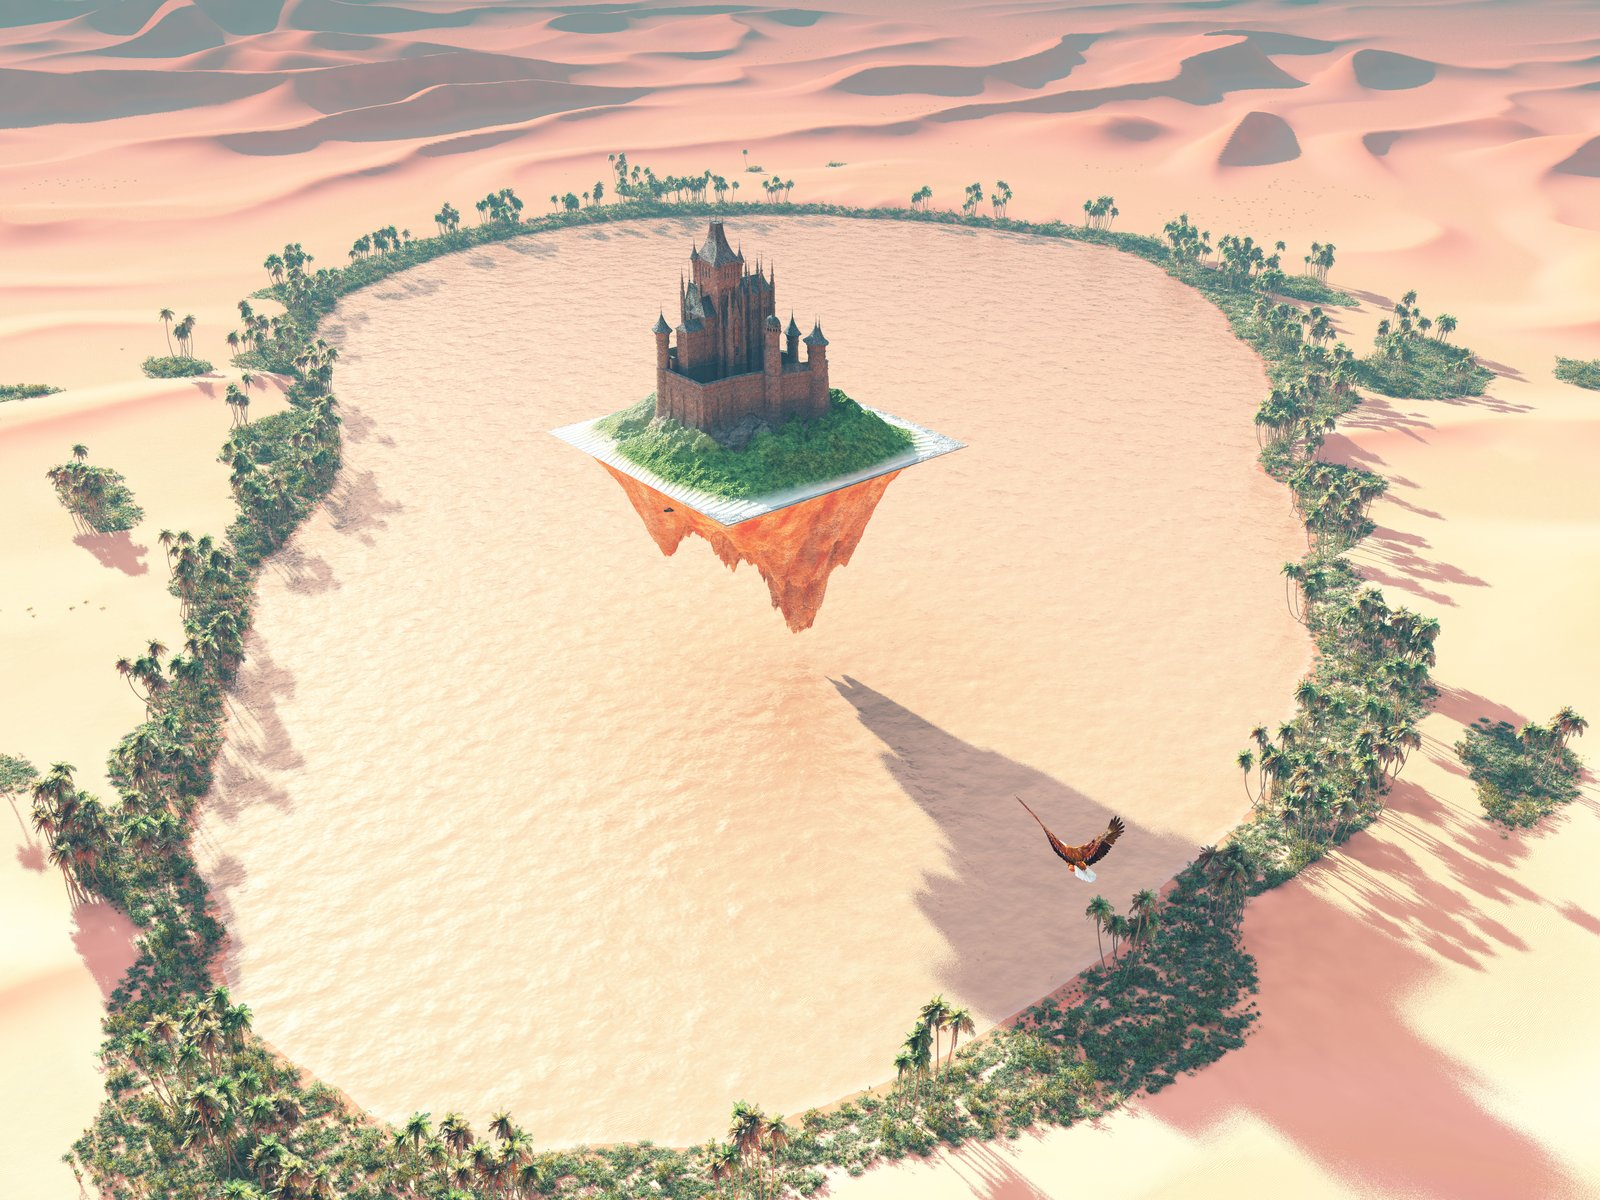 Oasis_Castle_2_by_LinhTruong